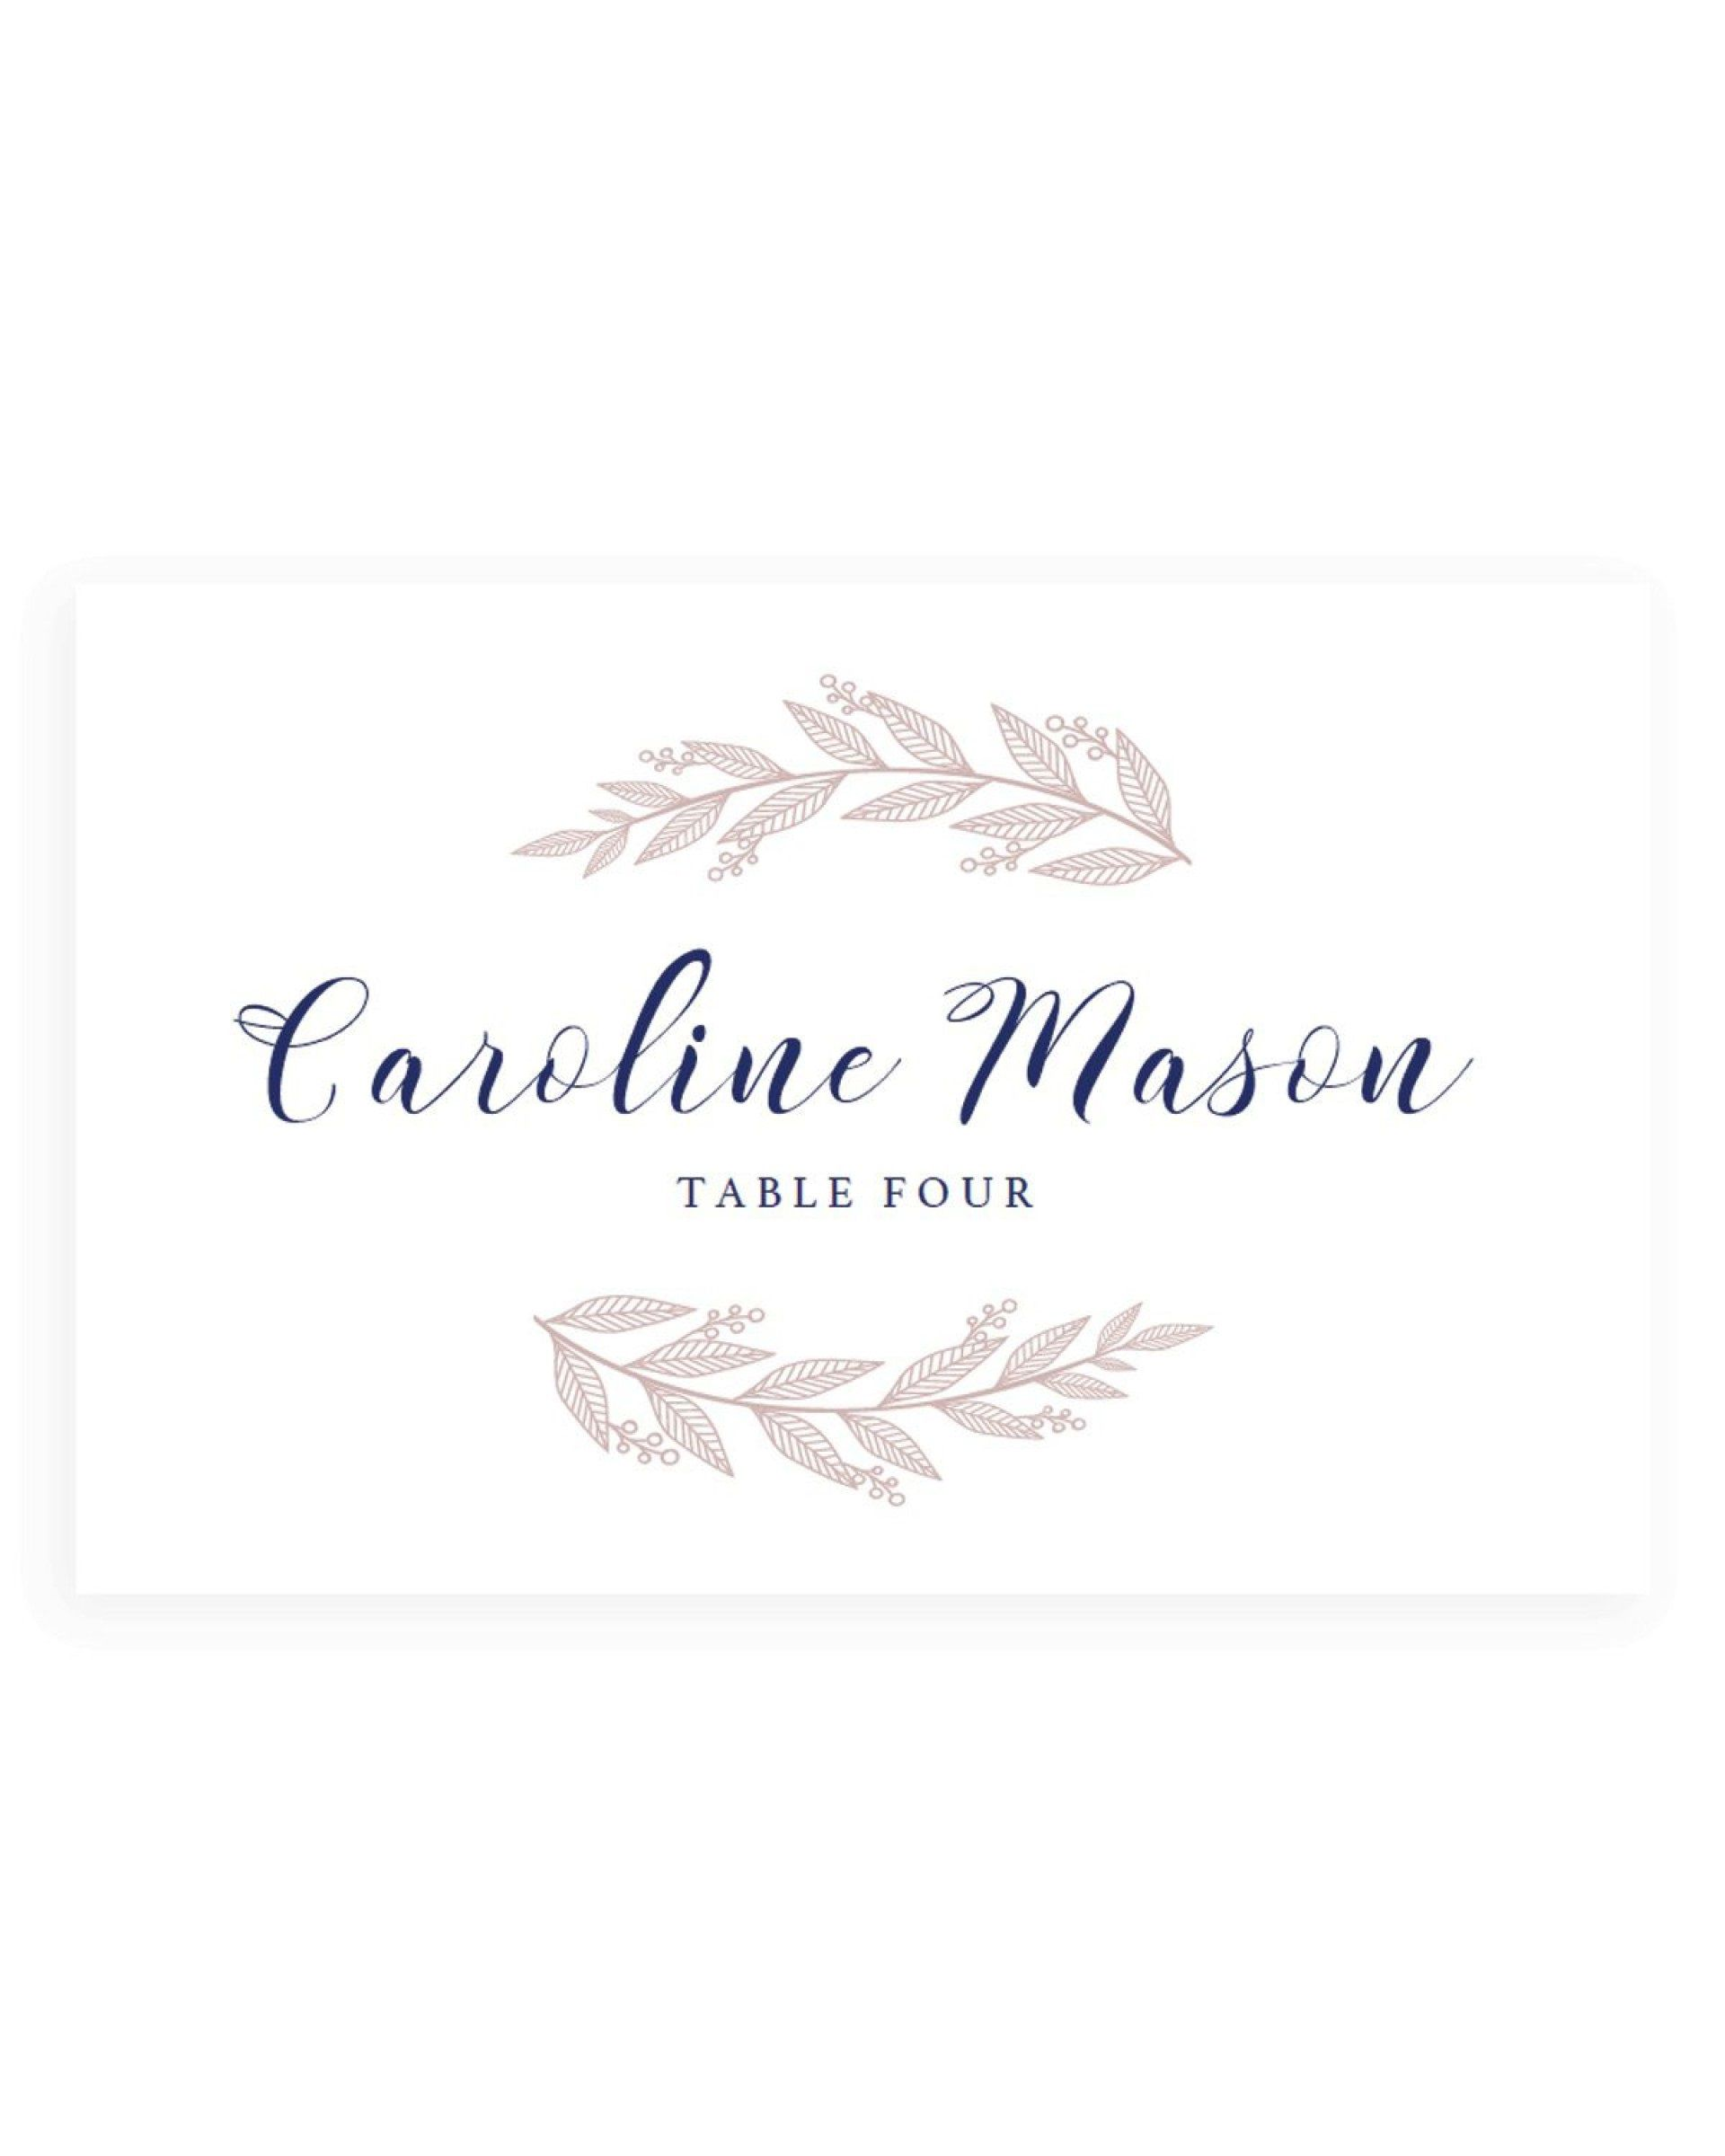 005 Formidable Name Place Card Template For Wedding Highest Clarity  Free WordFull